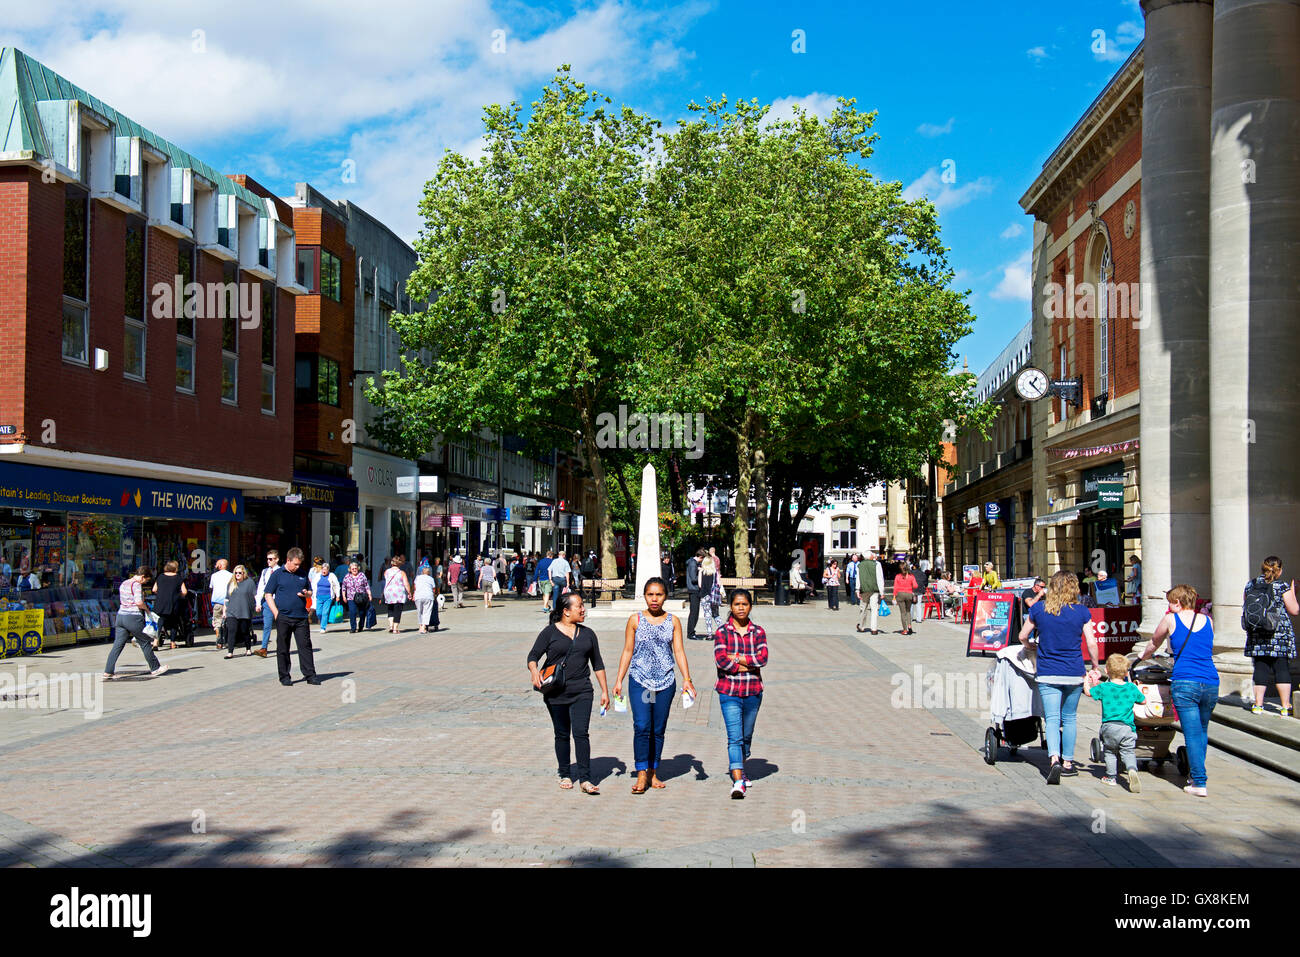 The city centre, Peterborough, Cambridgeshire, England UK - Stock Image